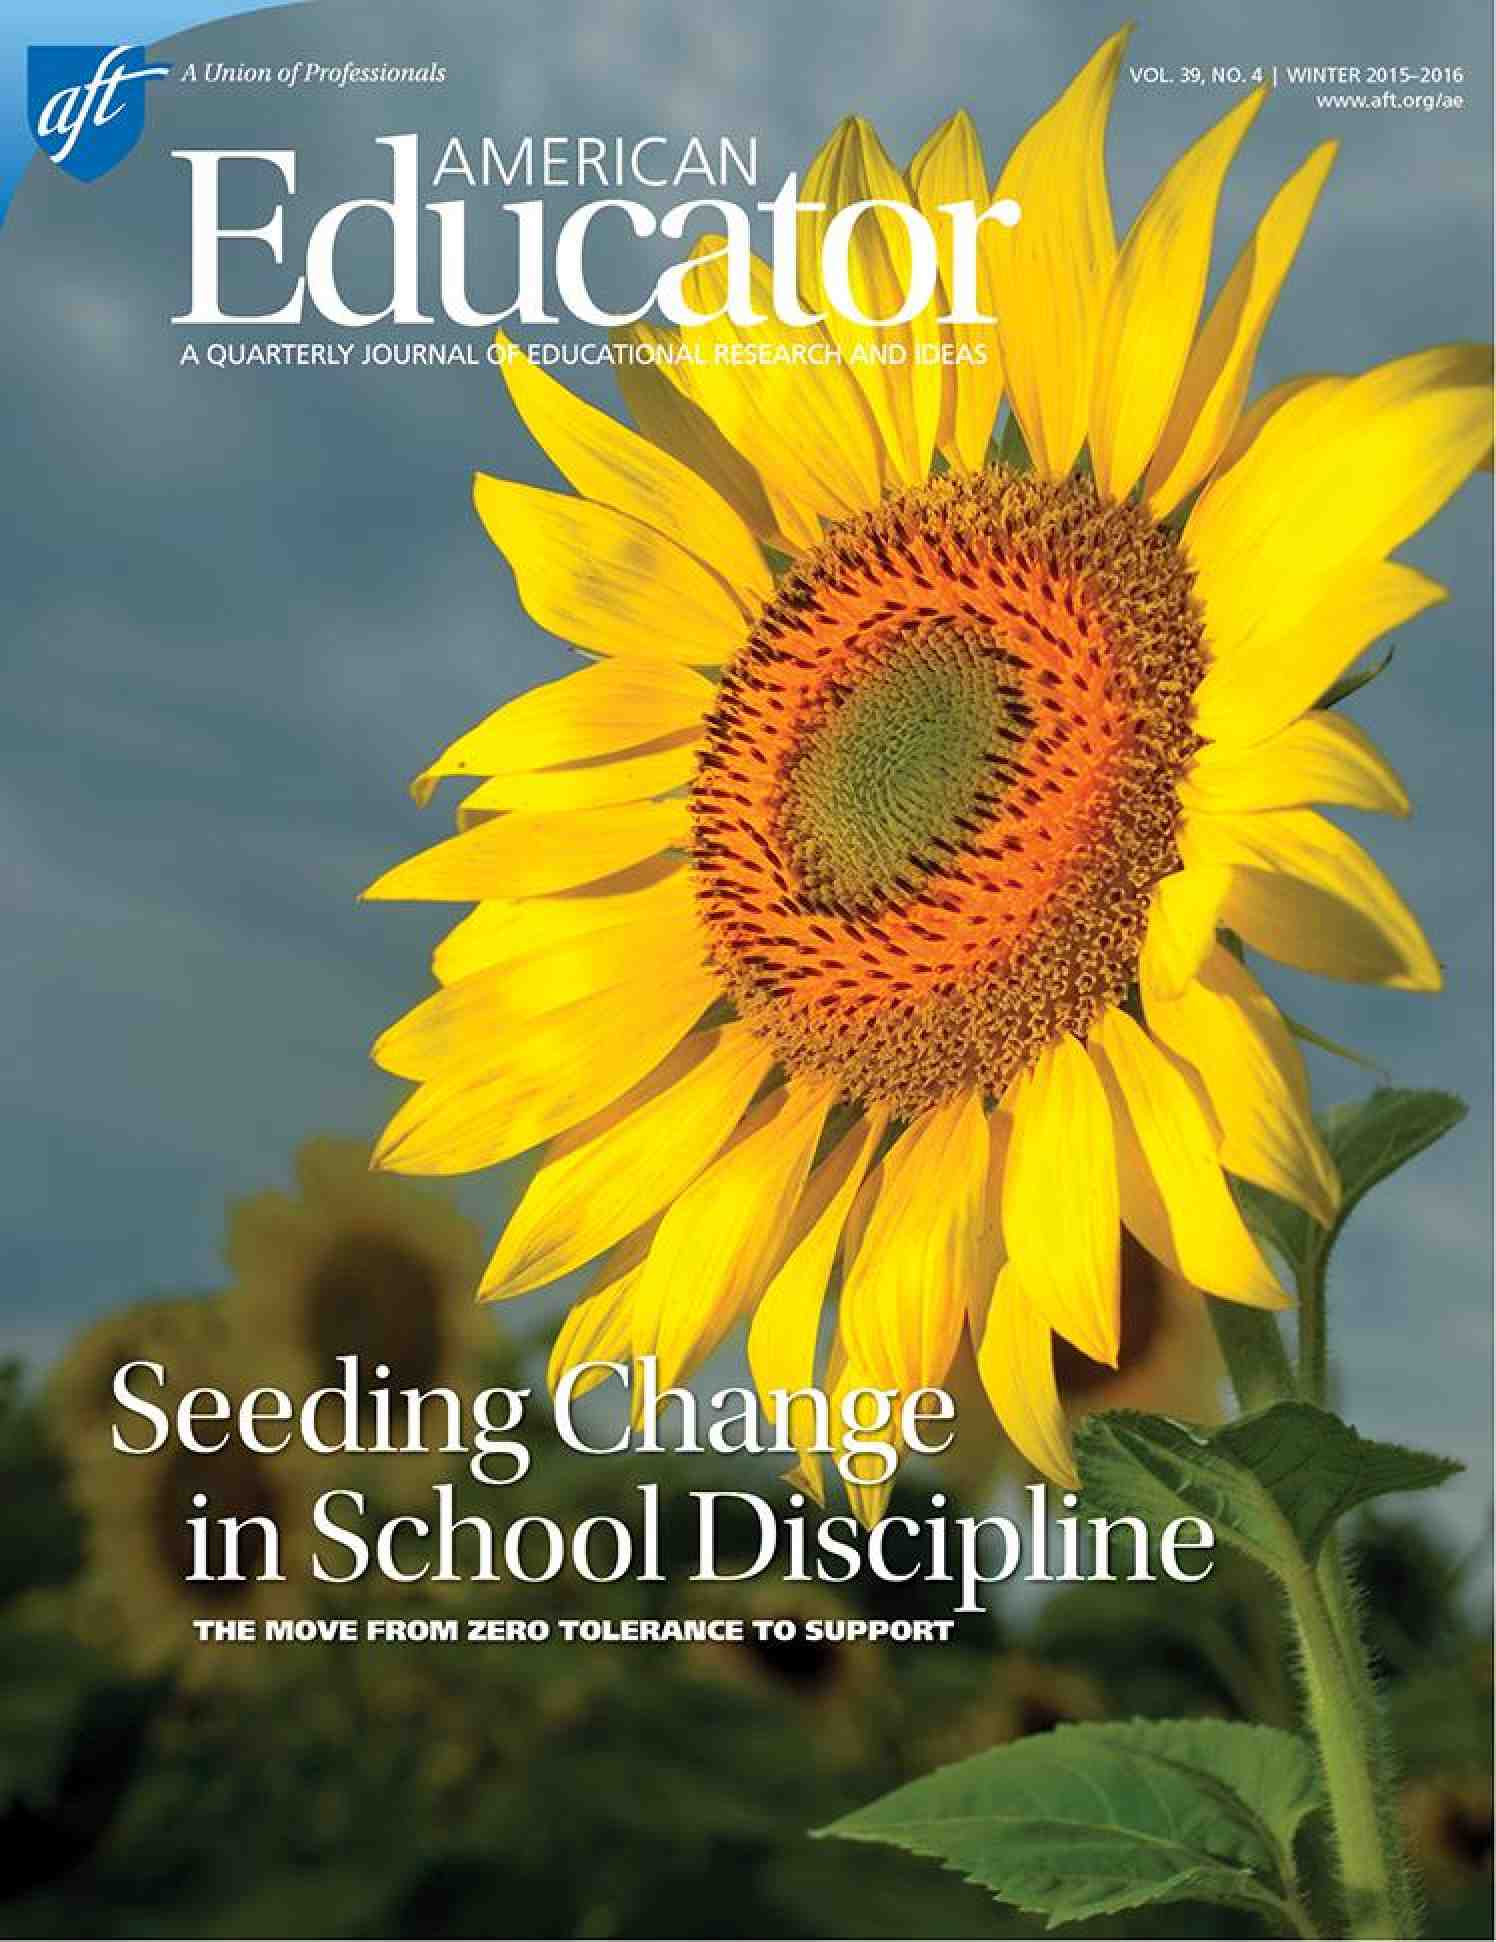 American Educator Winter 2015-2016